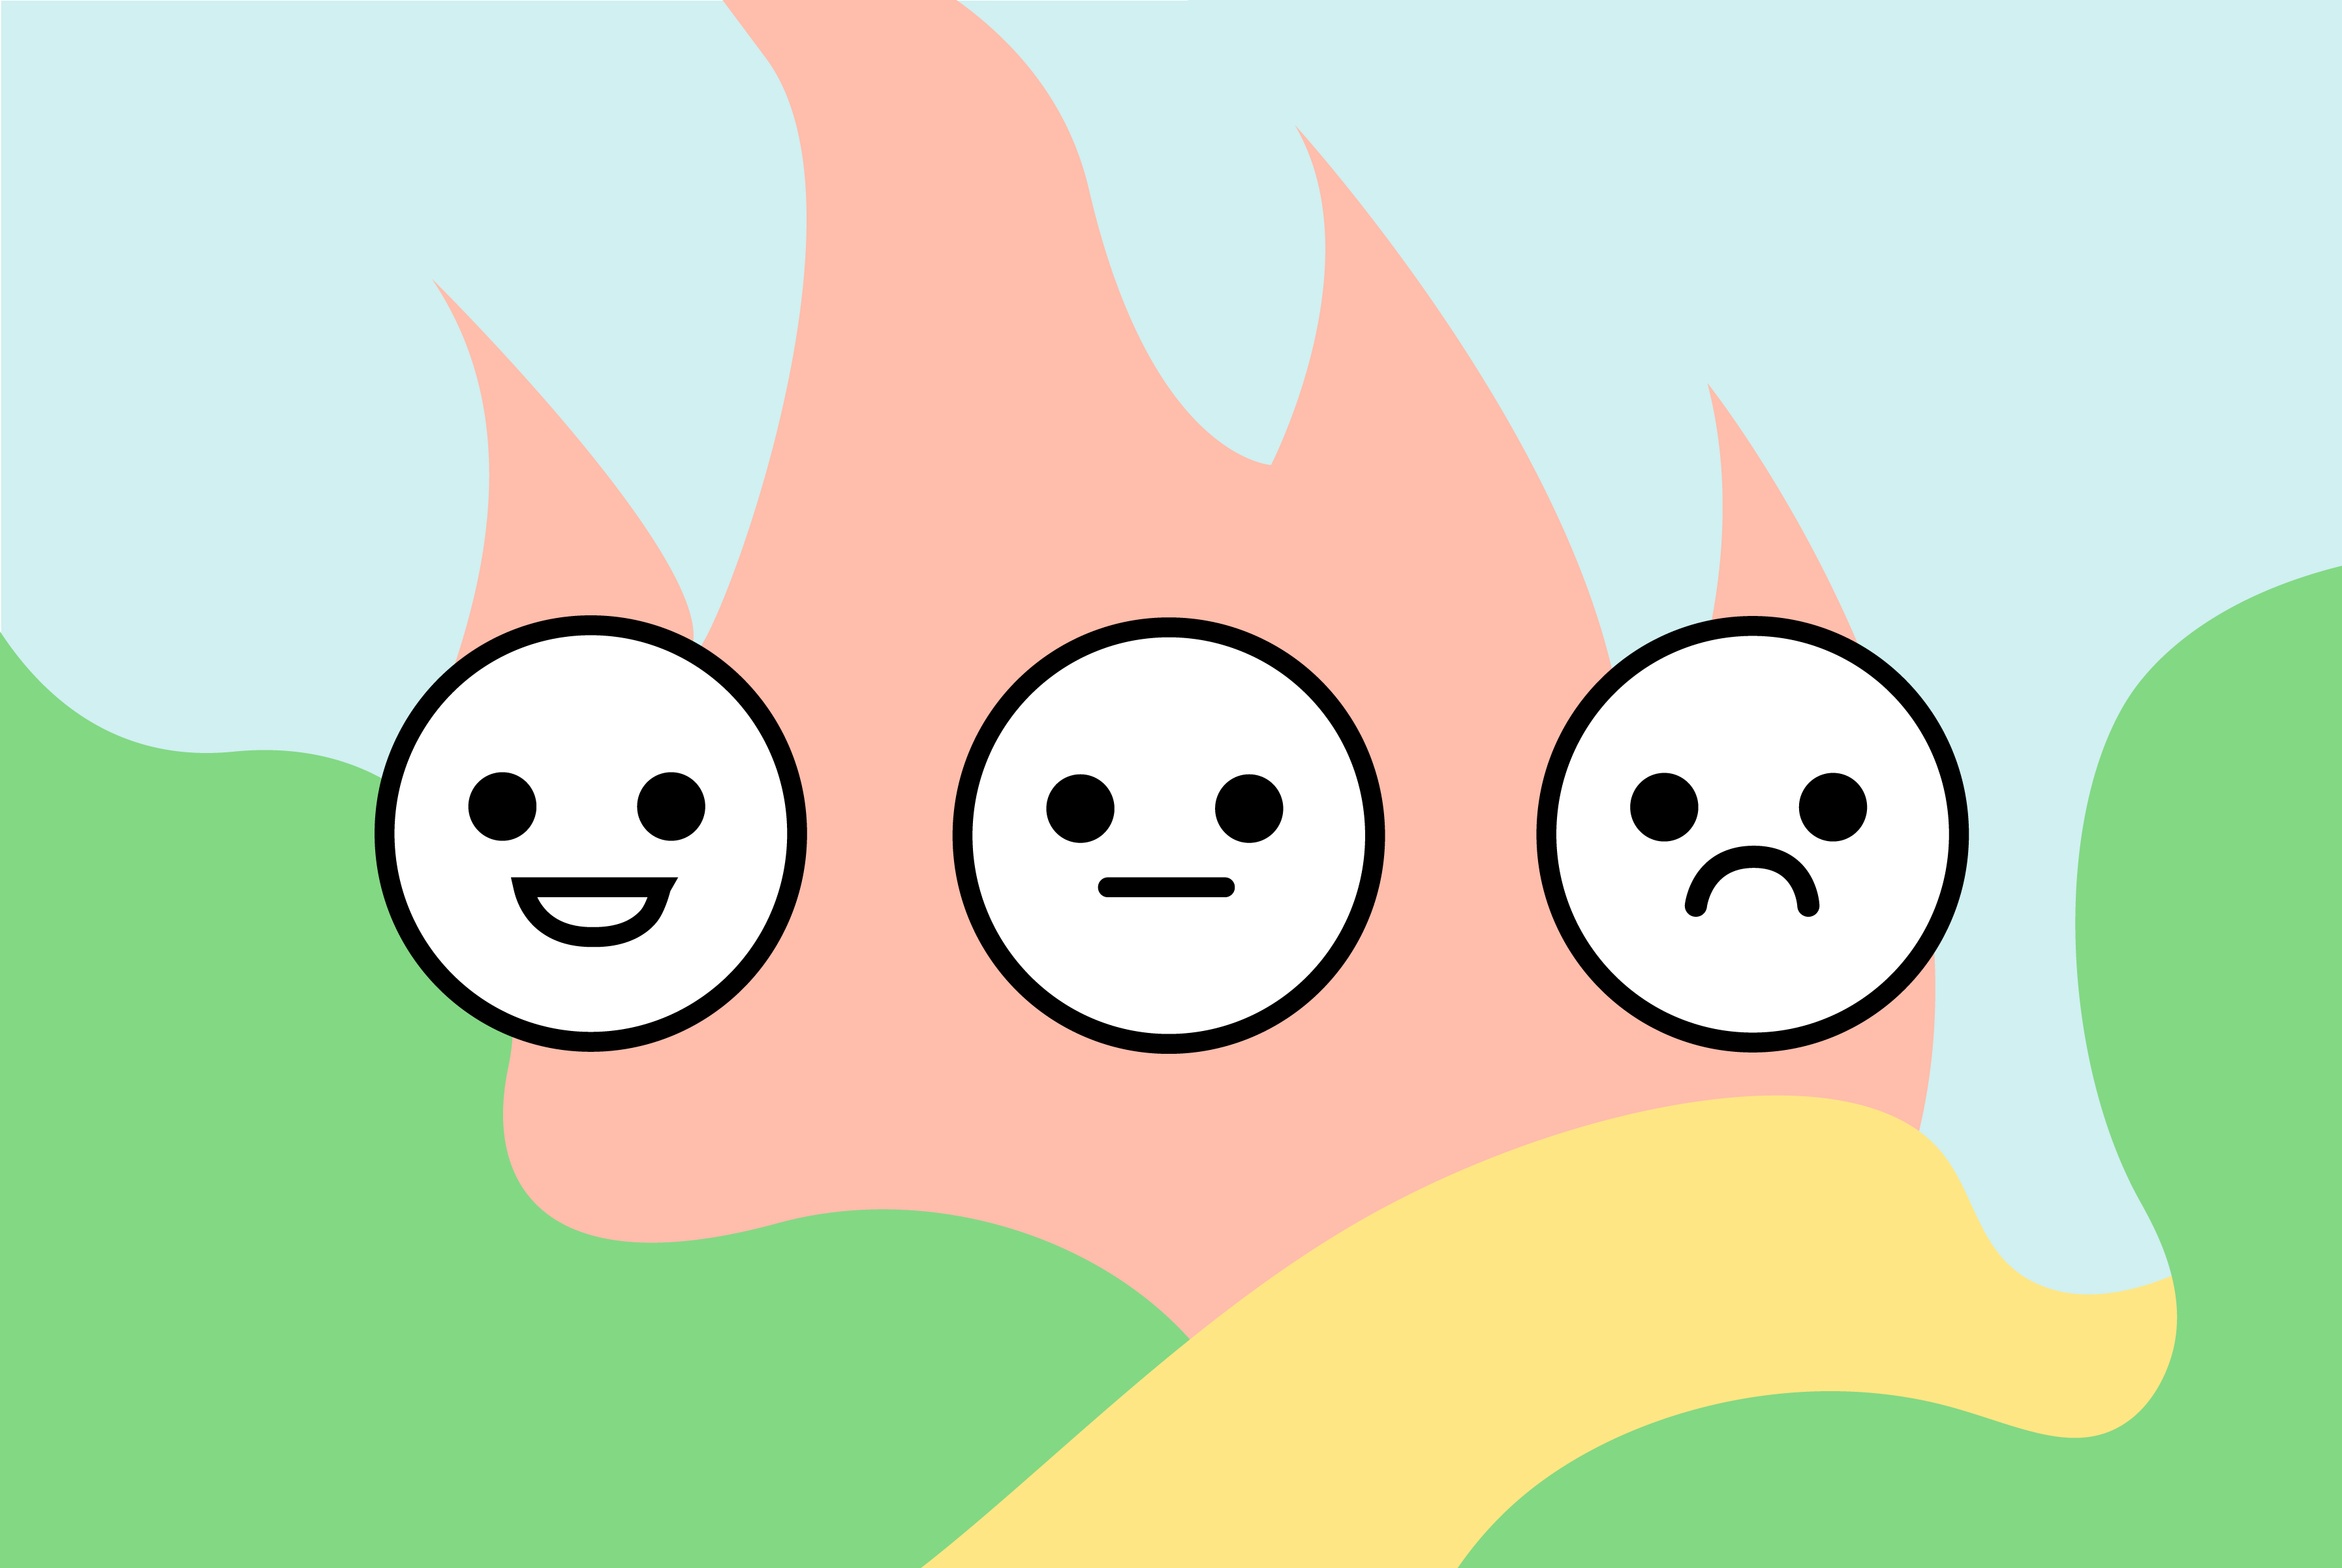 Burnout is the biggest threat to remote work success. Spoiler alert: your unlimited PTO policy won't fix it. Here are three solutions that will.